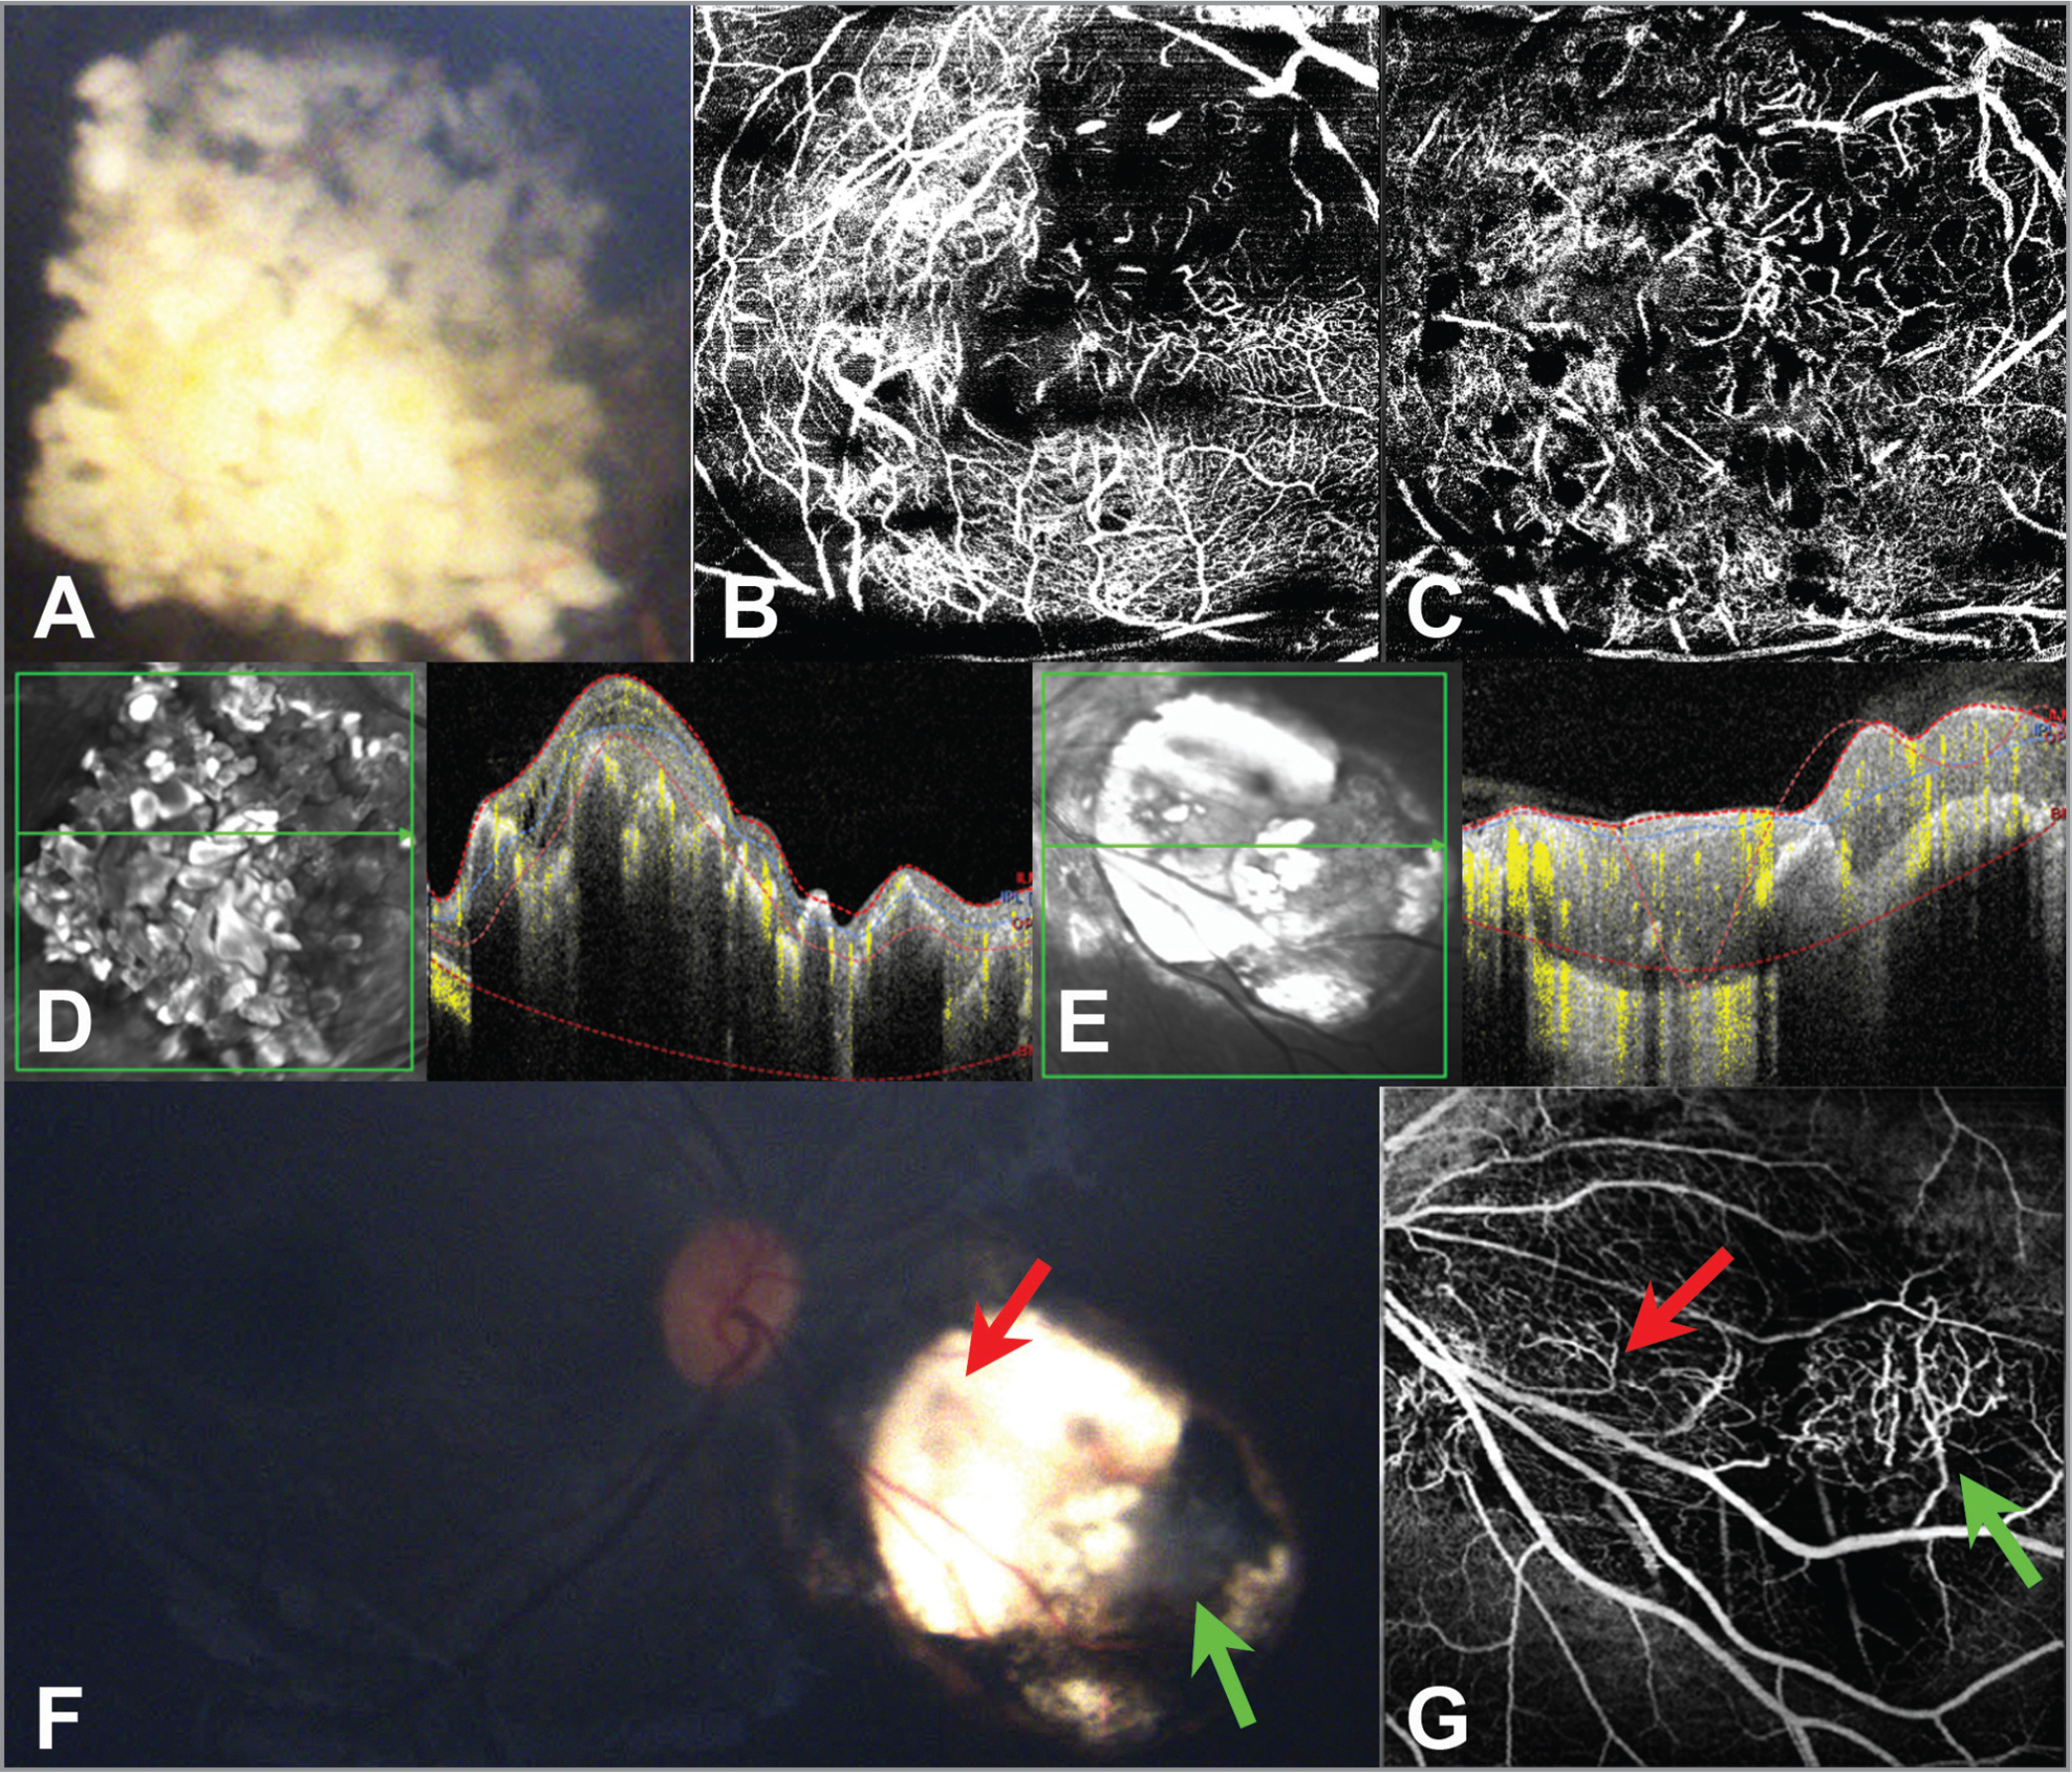 Multimodal imaging of Cases 2 and 3. Color fundus photo (A) of a retinoblastoma lesion from Case 2 shows type 1 regression. En face 20° × 20° optical coherence tomography angiography (OCTA) through the superficial aspect of this lesion (B) shows a dense intrinsic vascular network with fine vessel caliber, whereas OCTA through a deeper aspect of the lesion (C) shows a more dilated and tortuous network of intrinsic vessels and shadowing from the calcifications. (D) OCT B-scan with flow overlay of the lesion. This lesion was observed. (E) OCT B-scan with flow overlay of the retinoblastoma lesion from Case 3. Color fundus photo from Case 3 showing a retinoblastoma lesion with type 3 regression (F). The noncalcified remnant (red arrow) can be appreciated. There is an area with a pearly appearance concerning for tumor reactivation (green arrow). OCTA through the lesion (G) shows a prominent well demarcated vascular network with a dilated draining vessel in the area concerning for tumor reactivation (green arrow). OCTA also reveals finer lacey vascularity with diminutive feeder/draining vessels in the inactive noncalcified remnant (red arrow). The area concerning for tumor reactivation was treated with transpupillary thermotherapy.